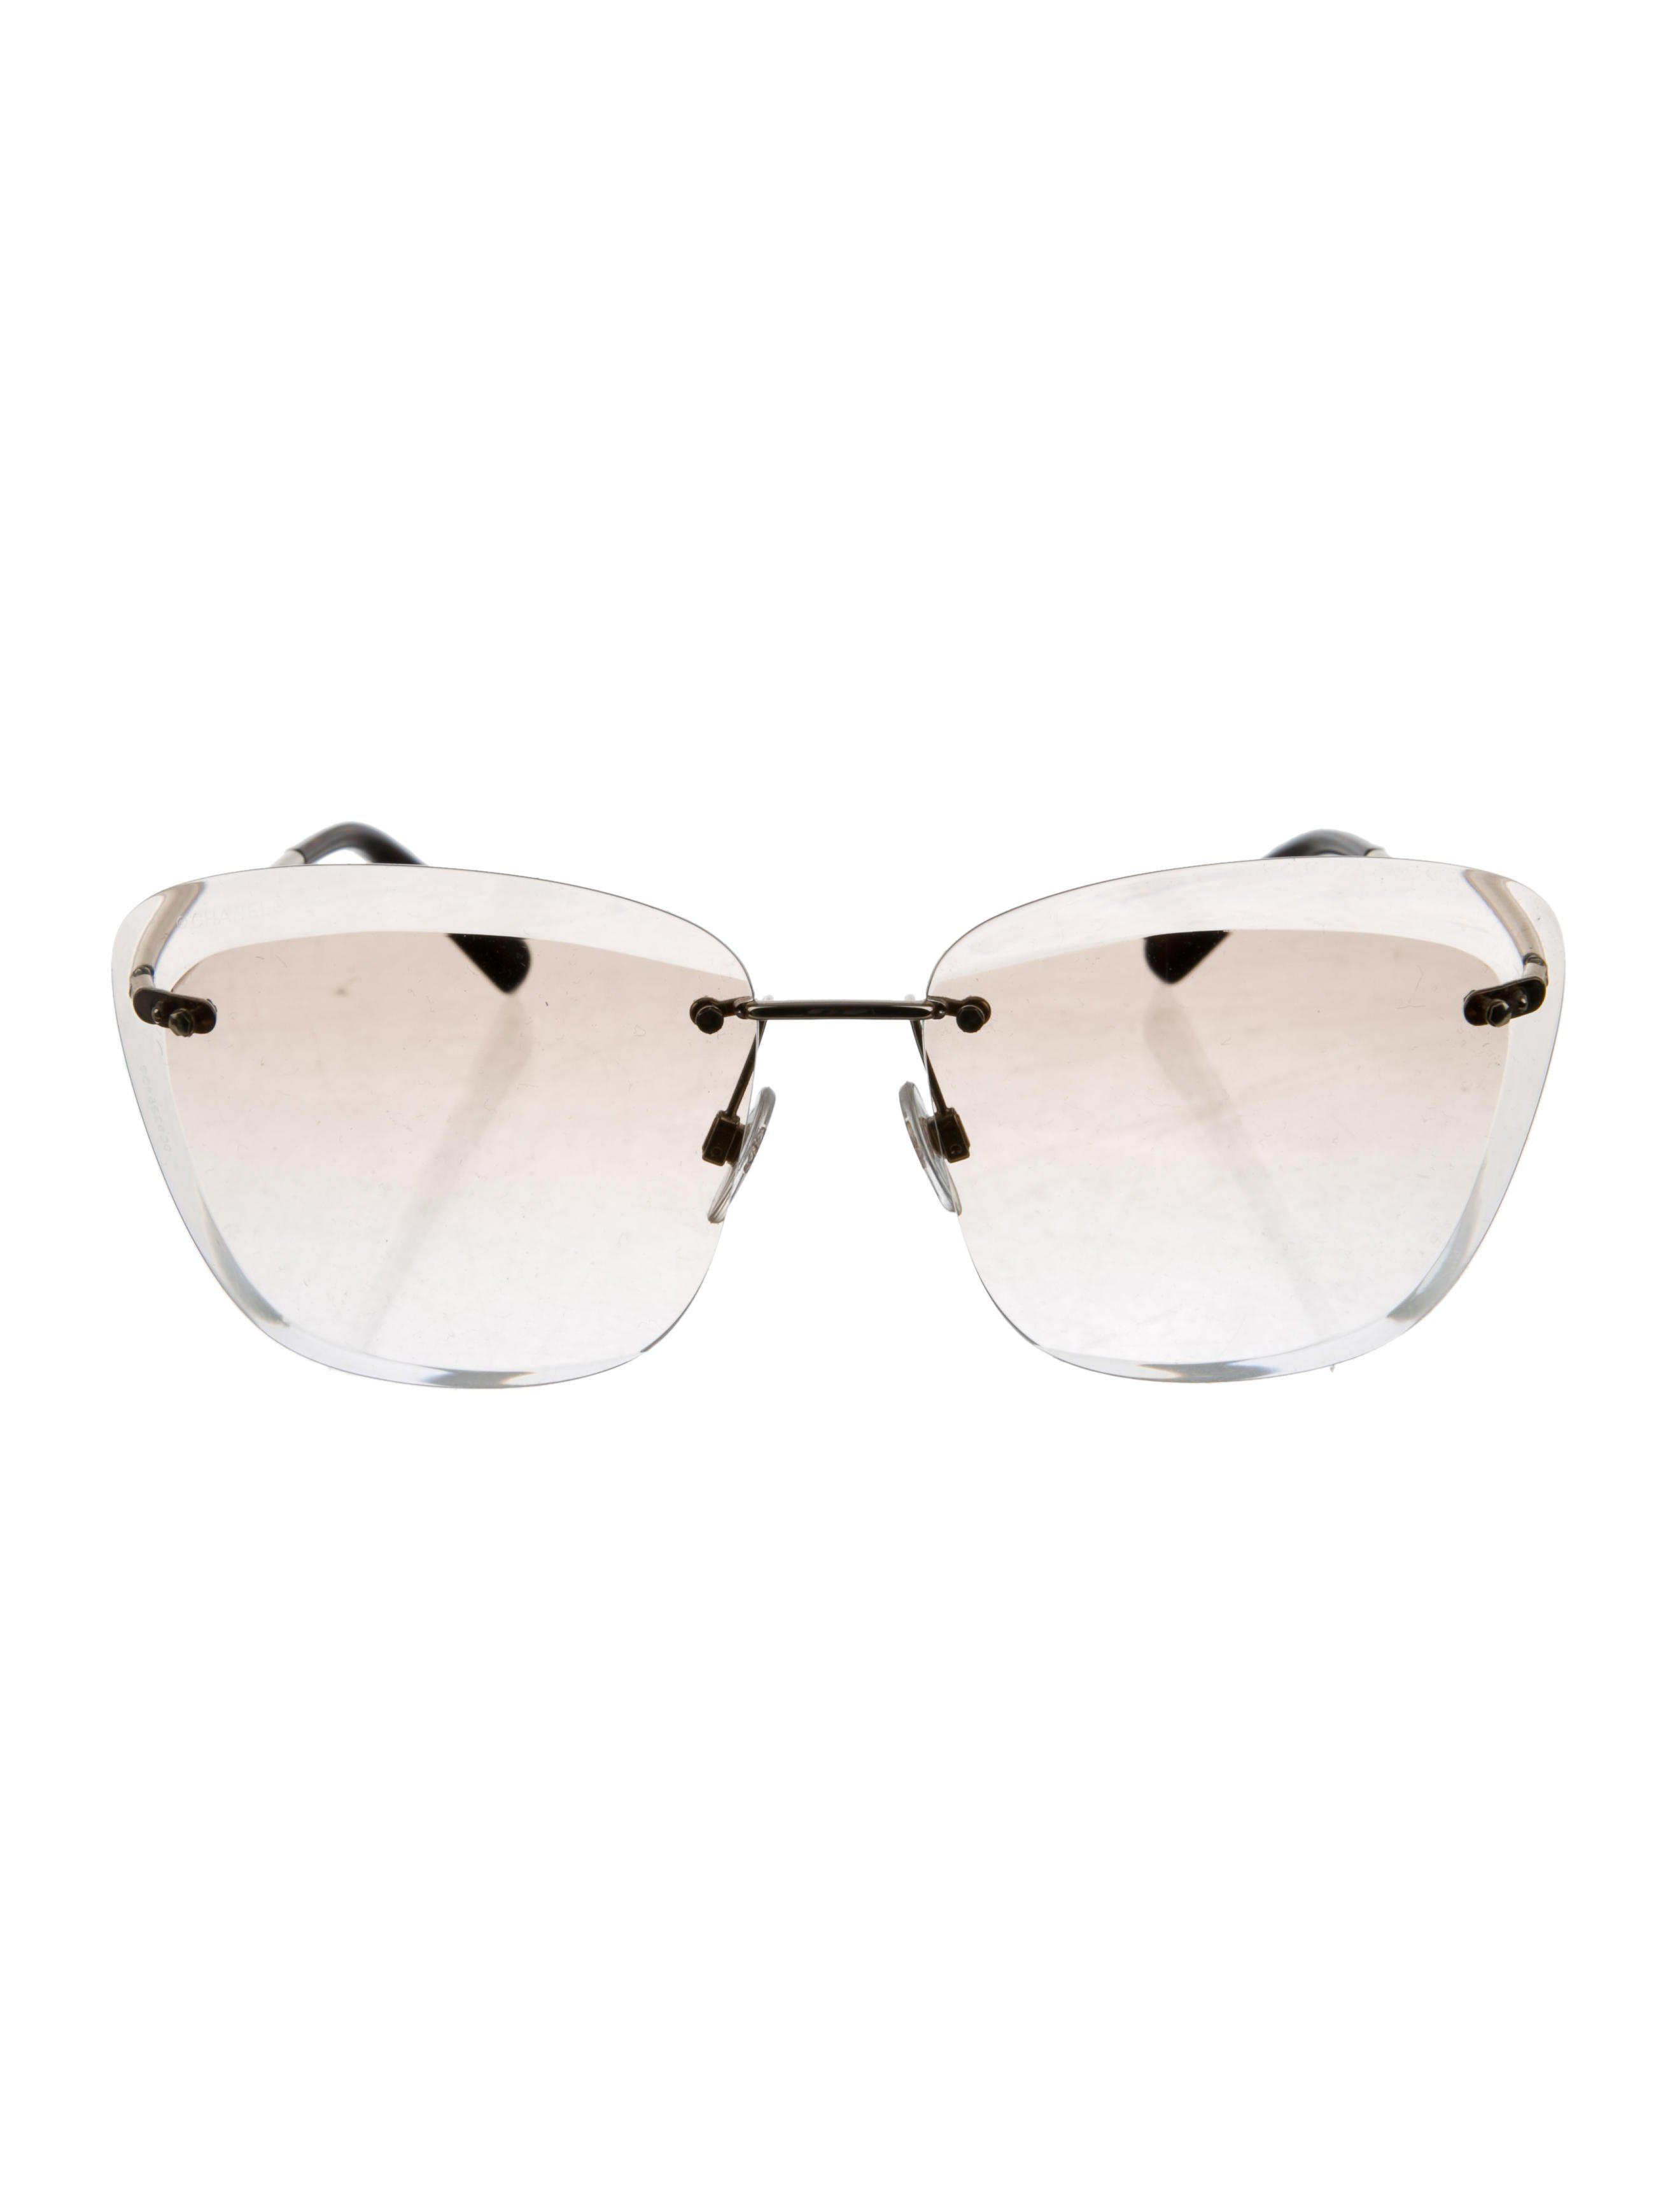 Lyst - Chanel 2018 Butterfly Spring Sunglasses Gold in Metallic